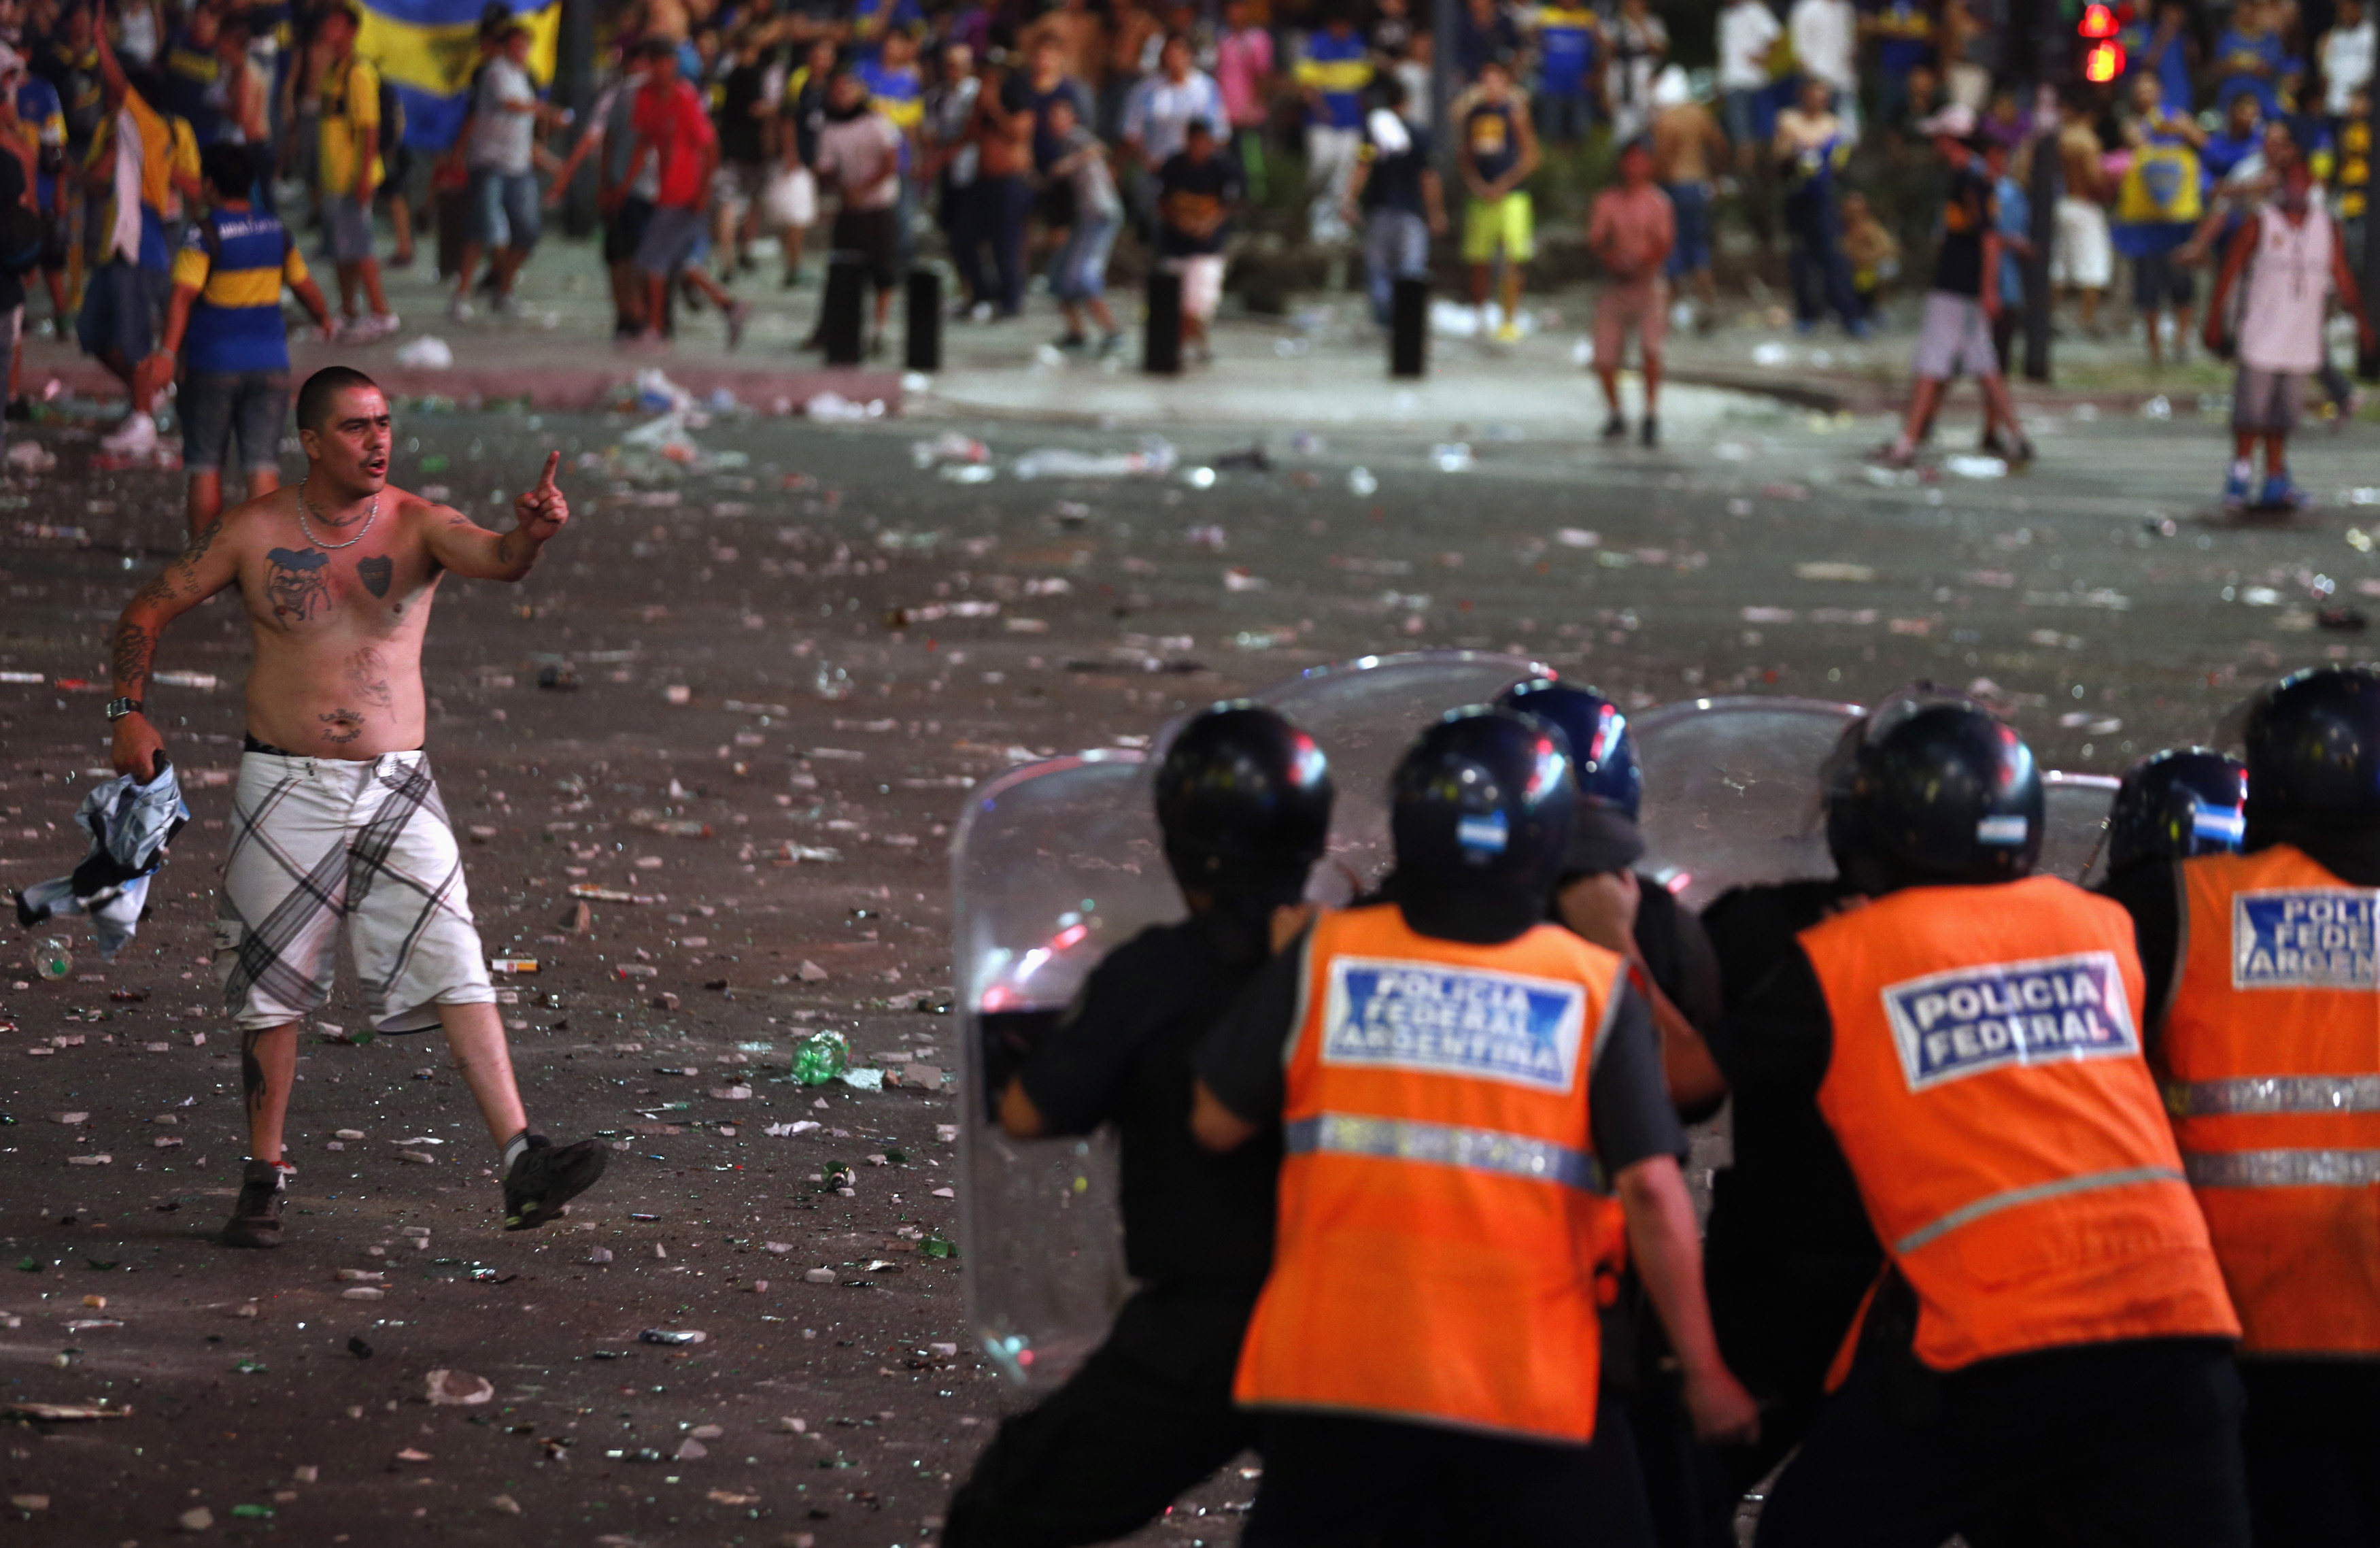 A fan of Argentine soccer team Boca Juniors confronts police during riots after celebrations of Boca Juniors Fan Day in downtown Buenos Aires December 12, 2013.